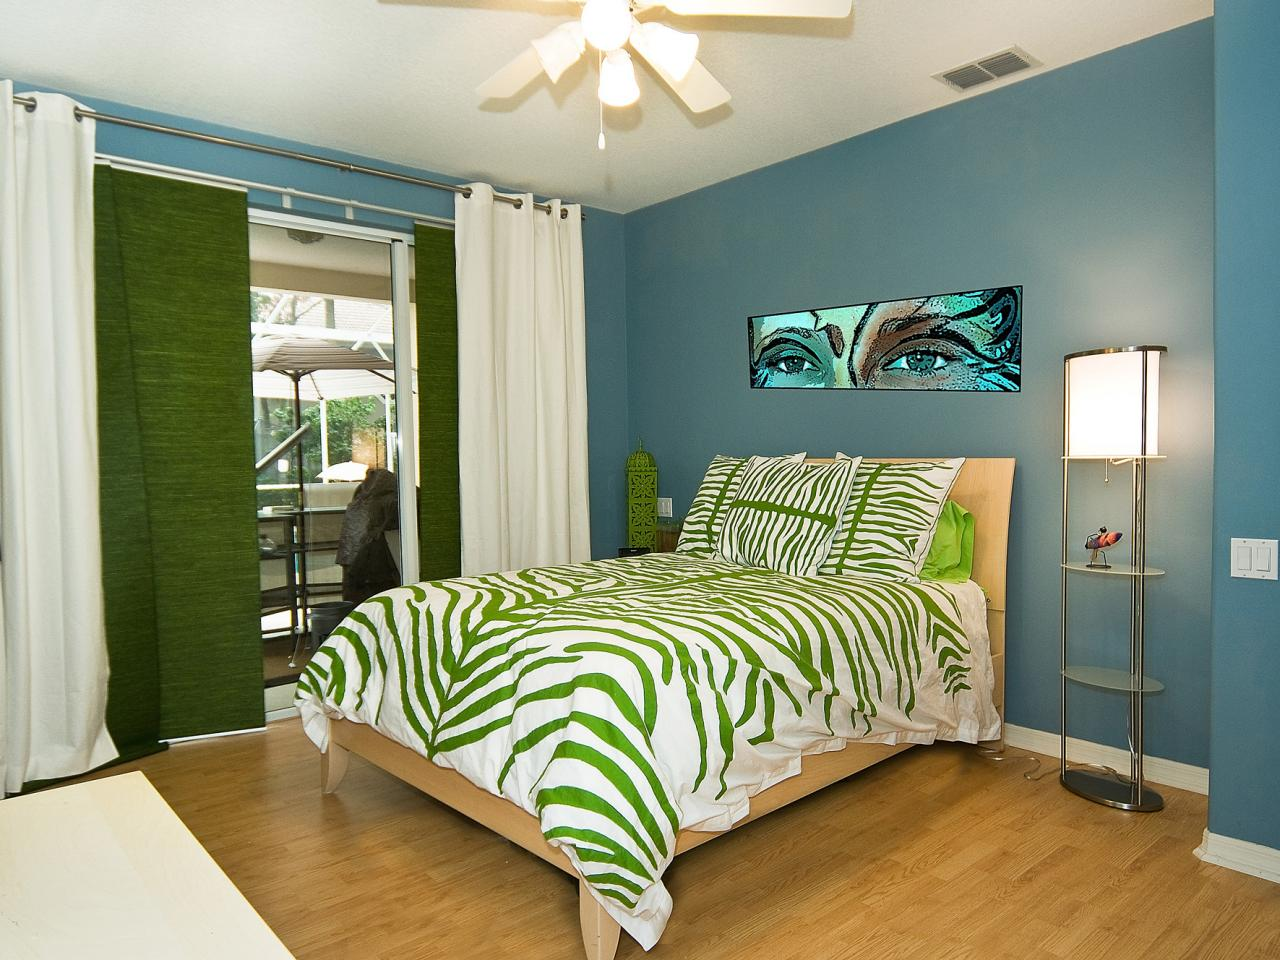 Sassy and sophisticated teen and tween bedroom ideas for Design your own teenage bedroom